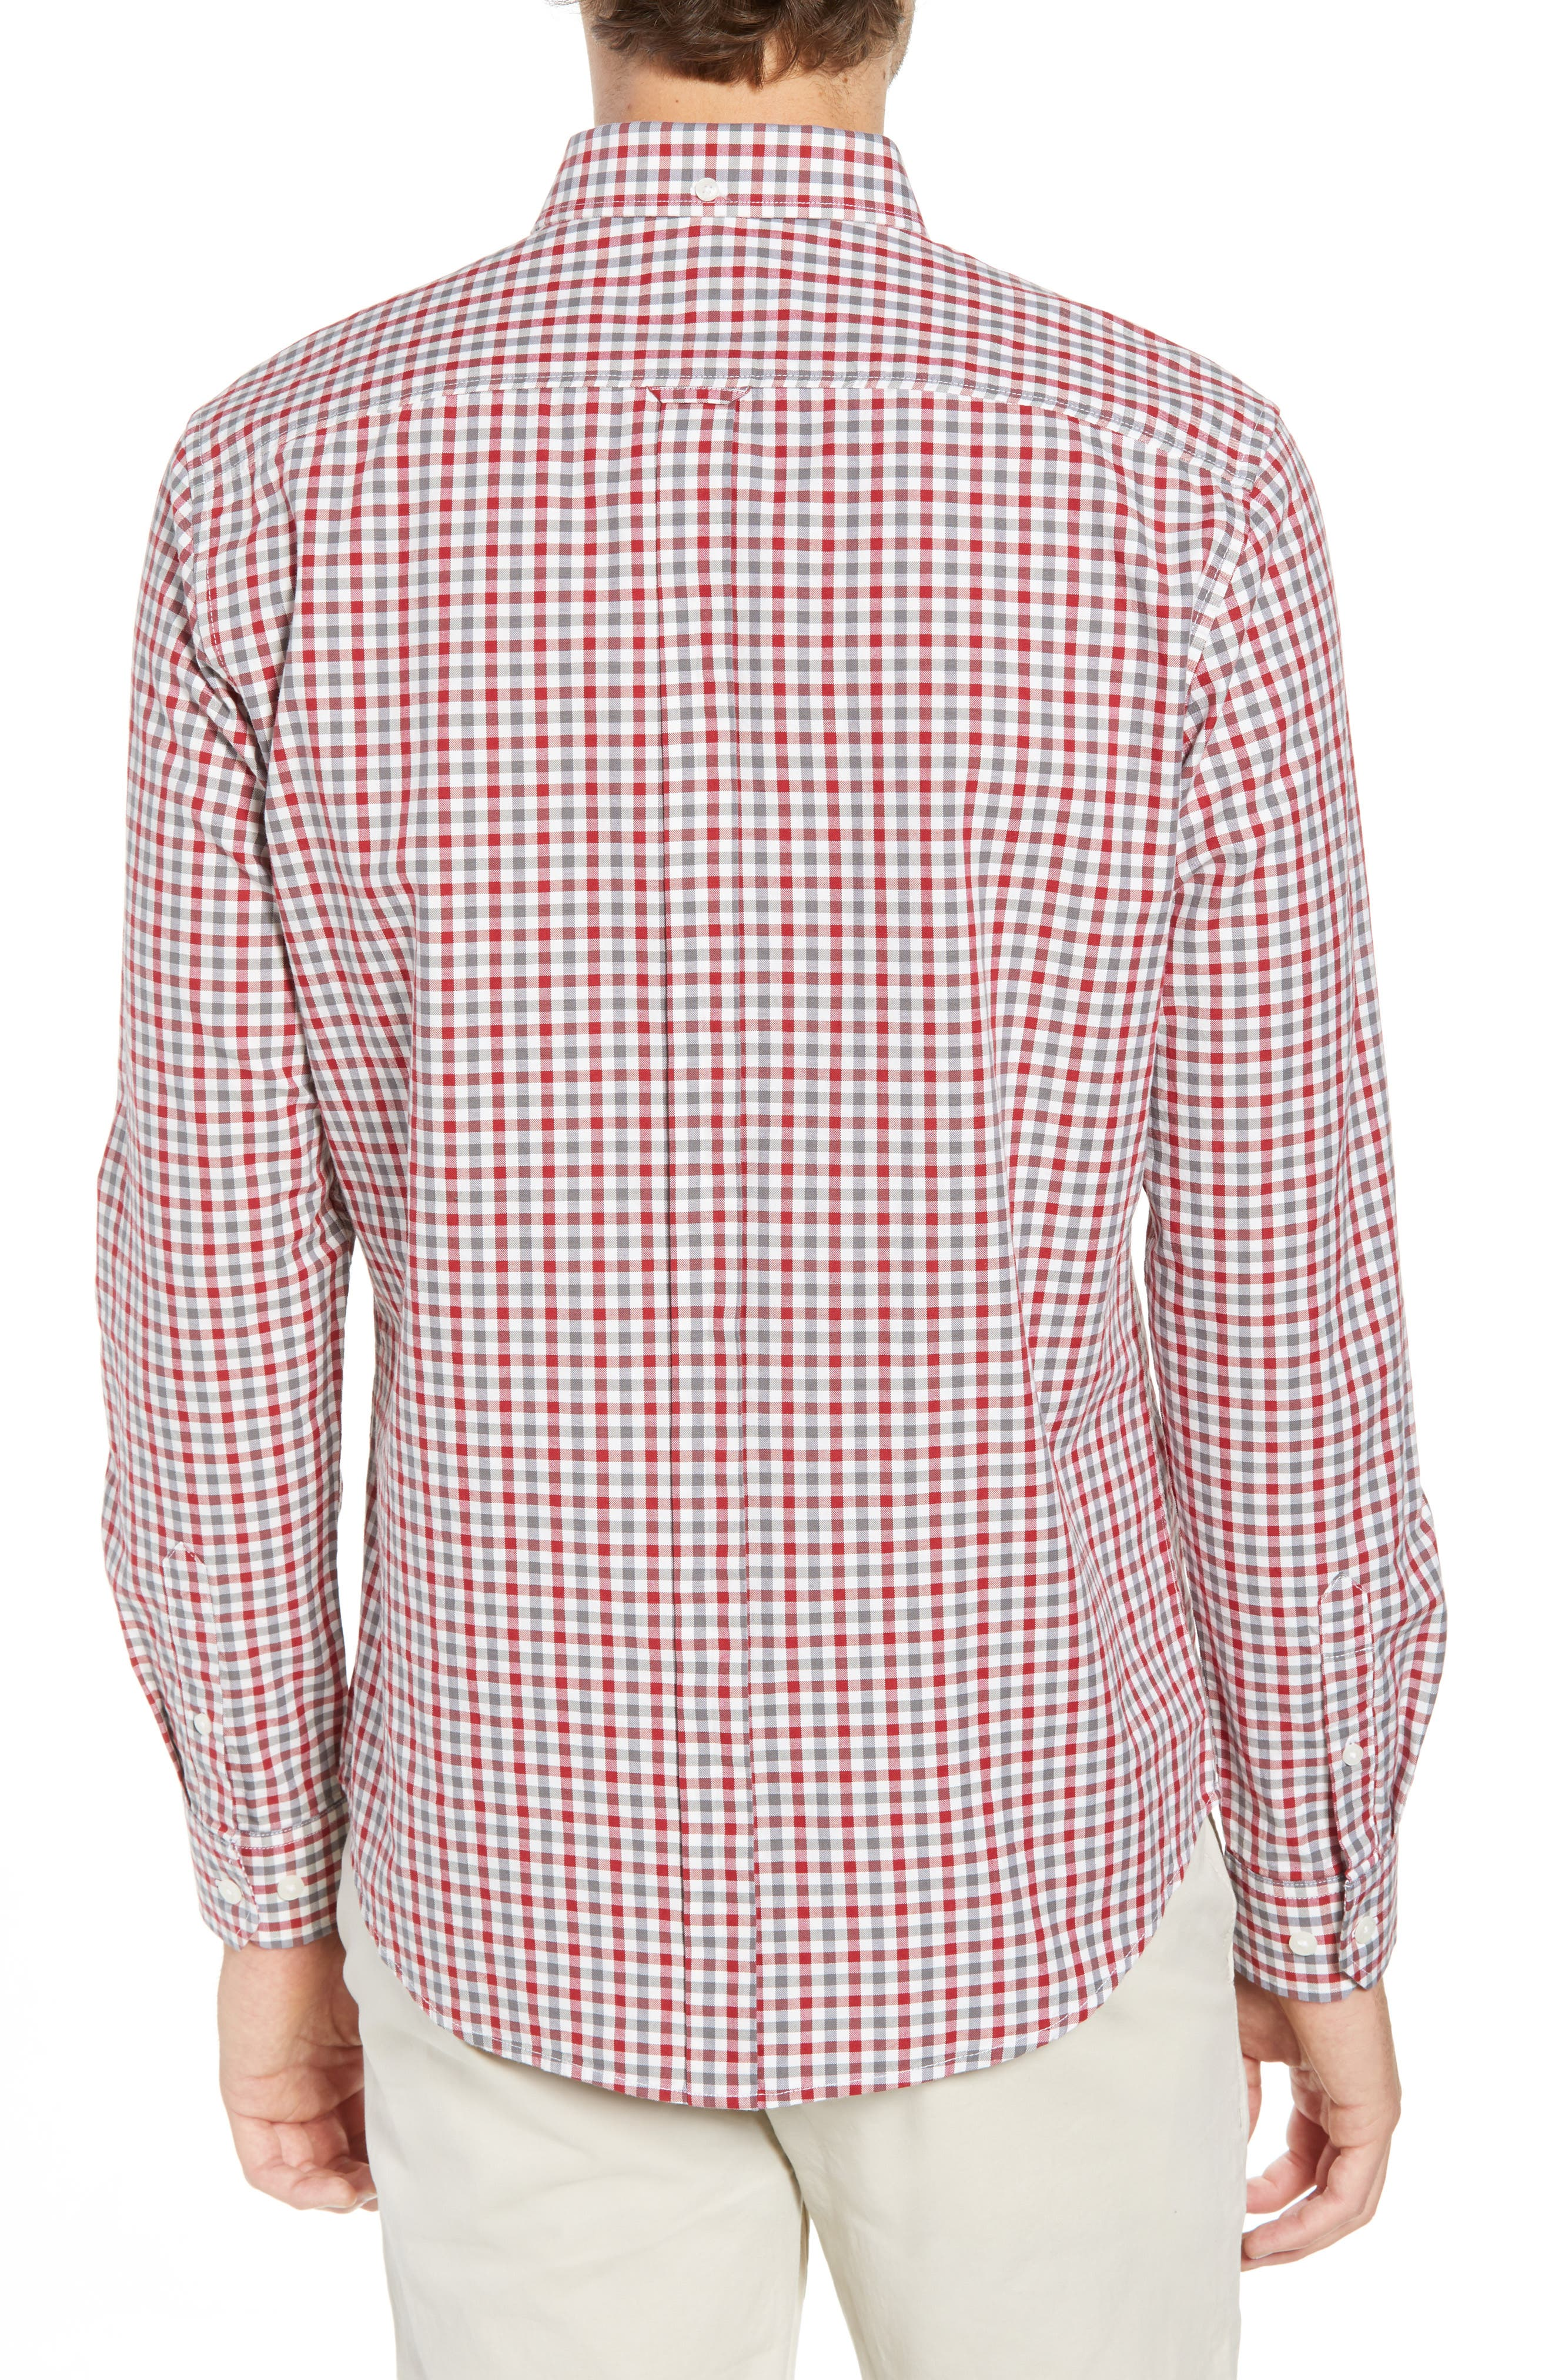 Mod Fit Gingham Woven Shirt,                             Alternate thumbnail 2, color,                             OFF WHITE